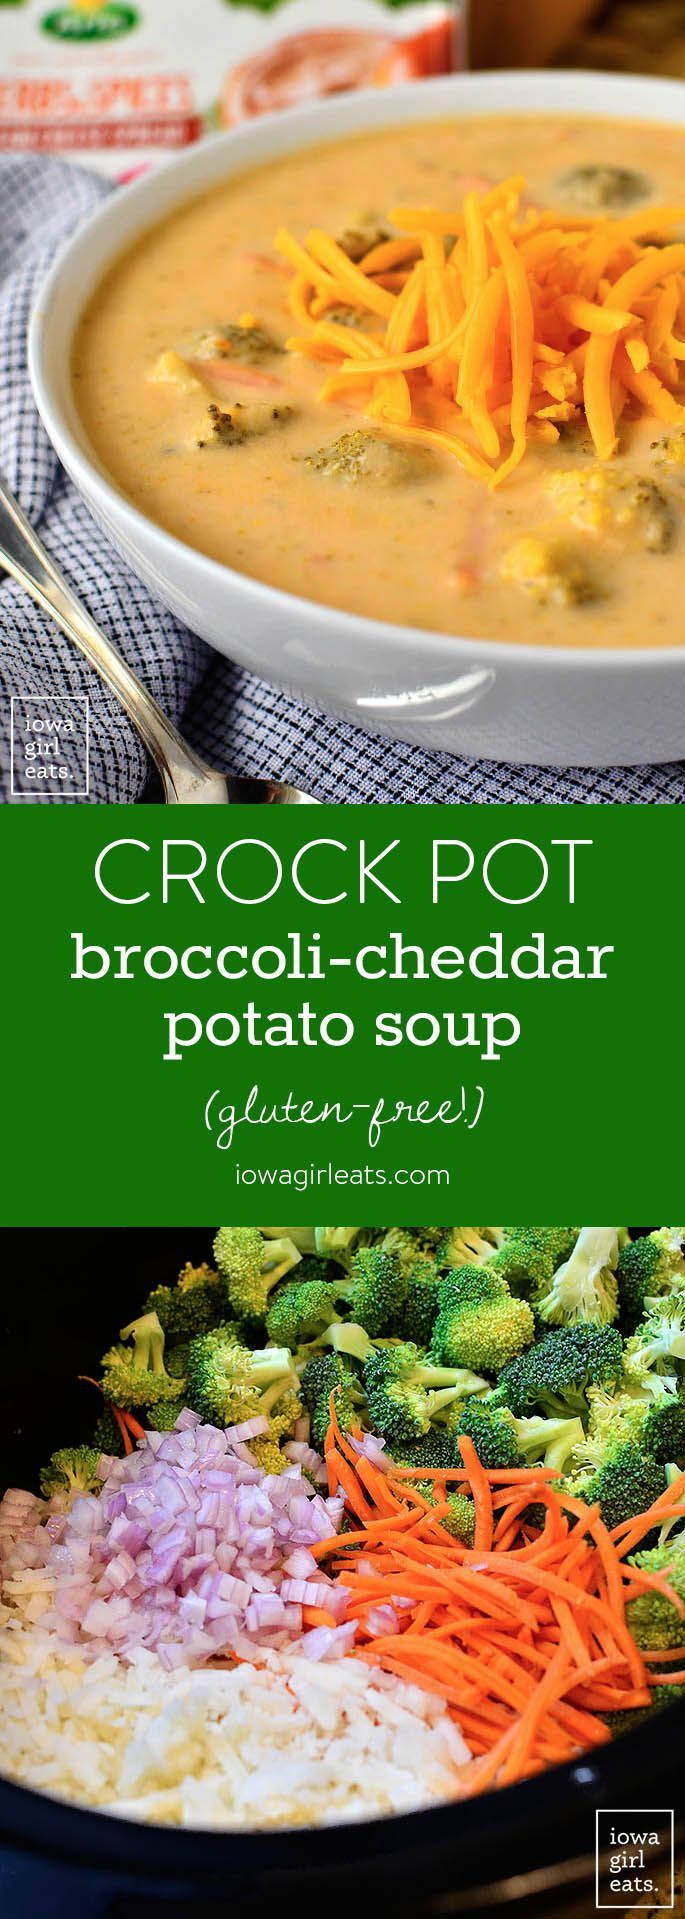 Crock Pot Broccoli-Cheddar Potato Soup is thick, creamy, and oh-so cheesy. This crock pot soup recipe is easy and gluten-free, too! | iowagirleats.com